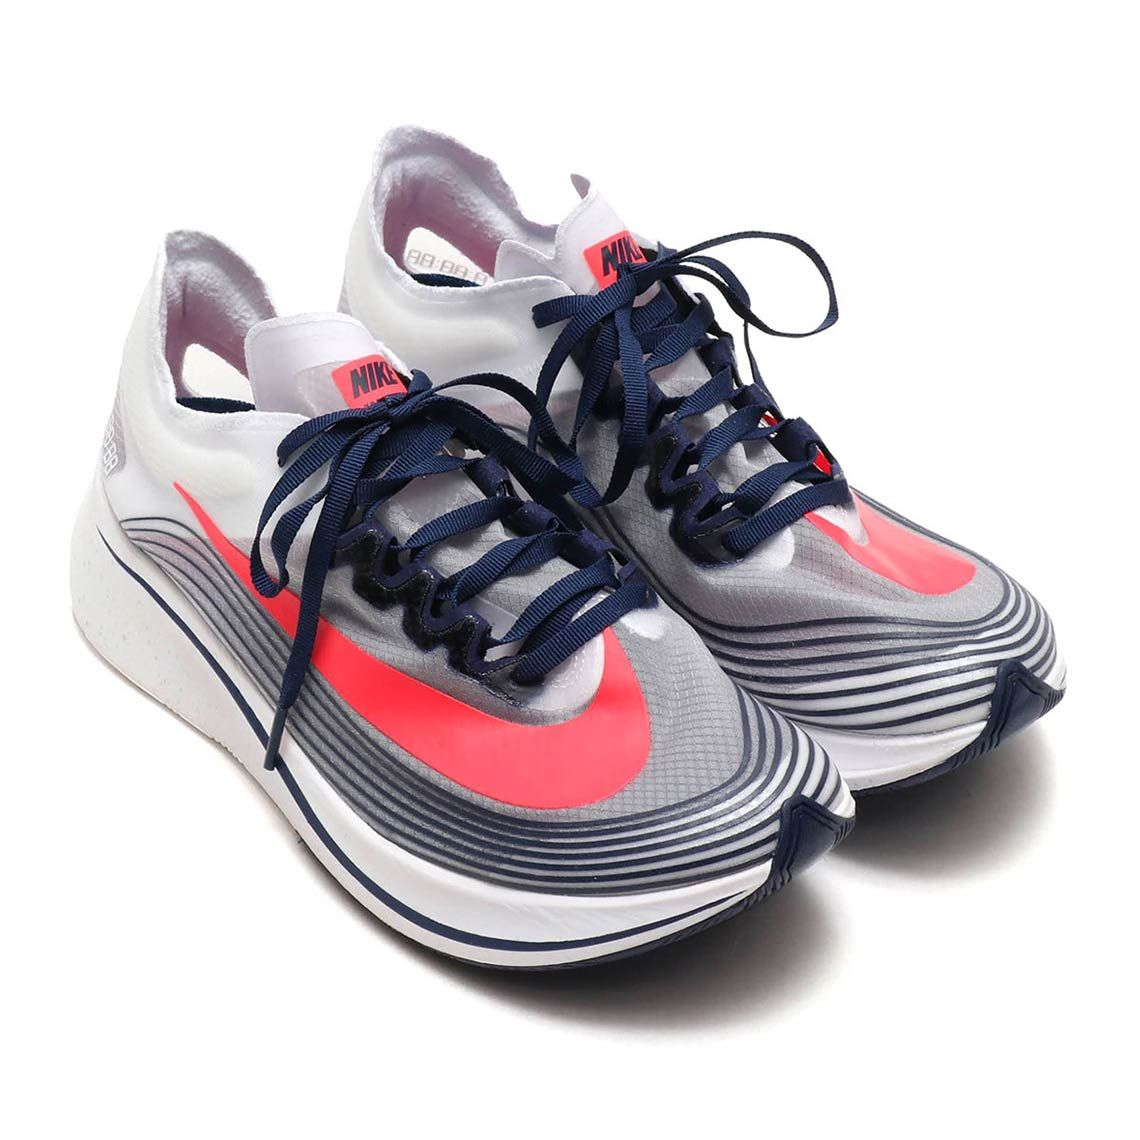 d5215726caf The Nike Zoom Fly SP Gets A Red White And Blue Makeover